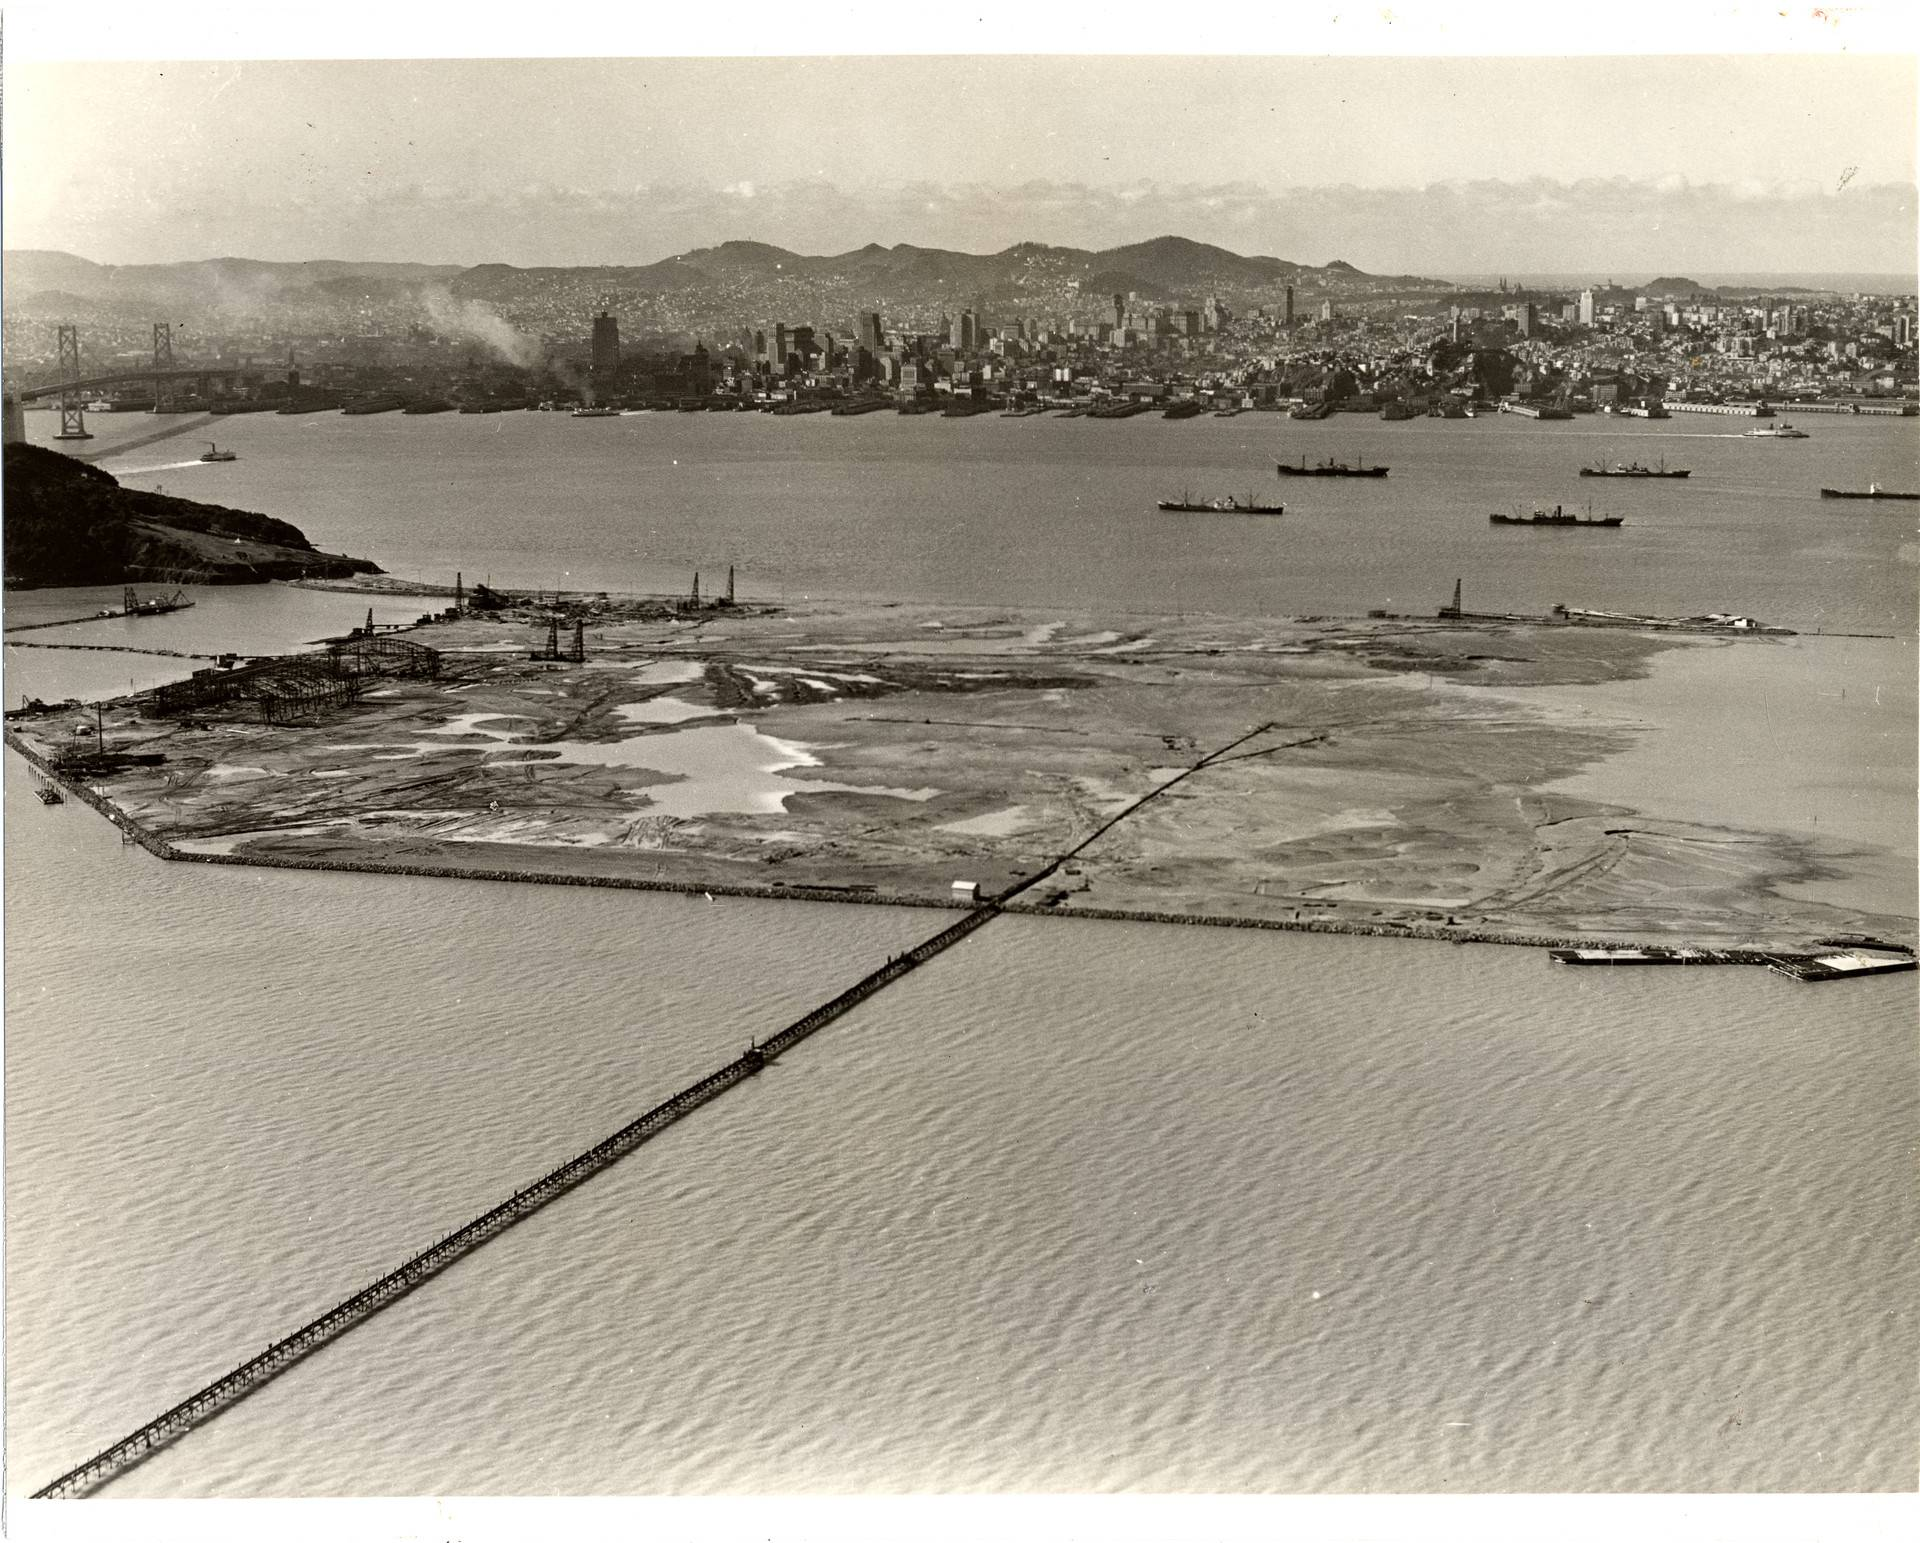 Treasure Island is man-made, engineered with bay mud on a shoal adjacent to naturally occurring Yerba Buena. San Francisco History Center/San Francisco Public Library